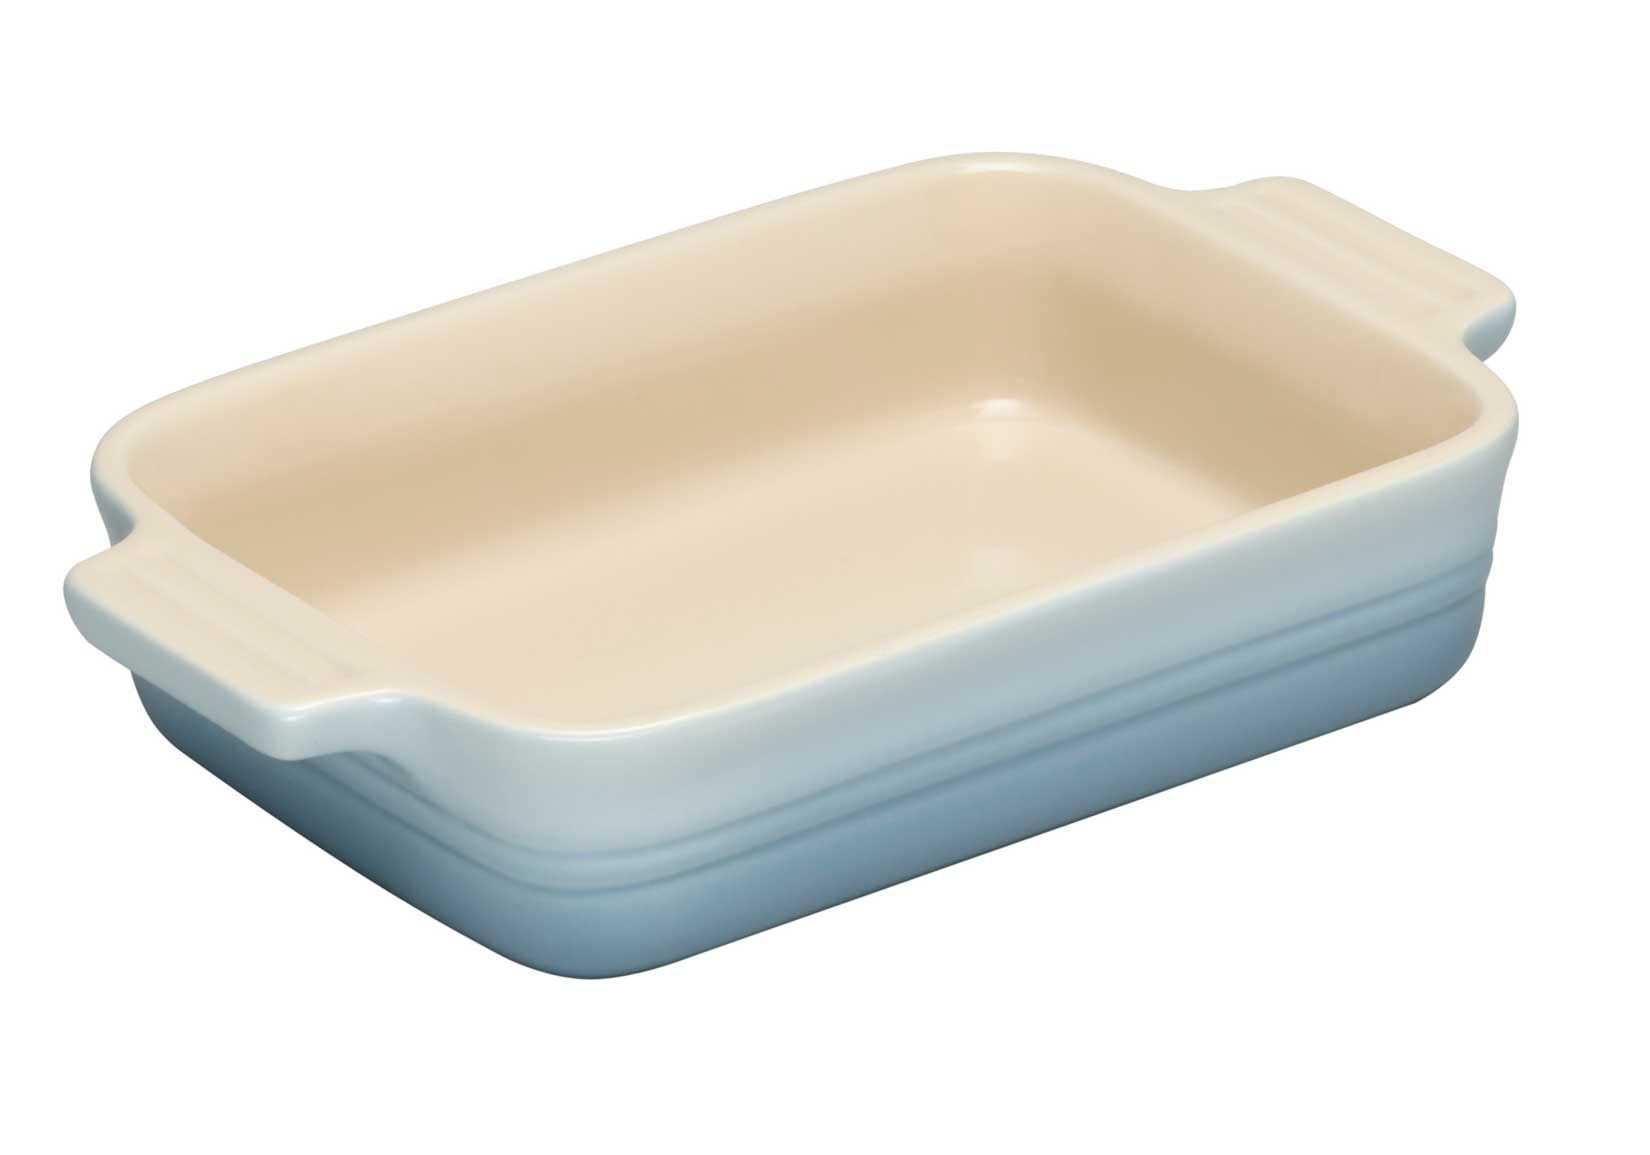 Rectangular dish, Coastal Blue, 32cm